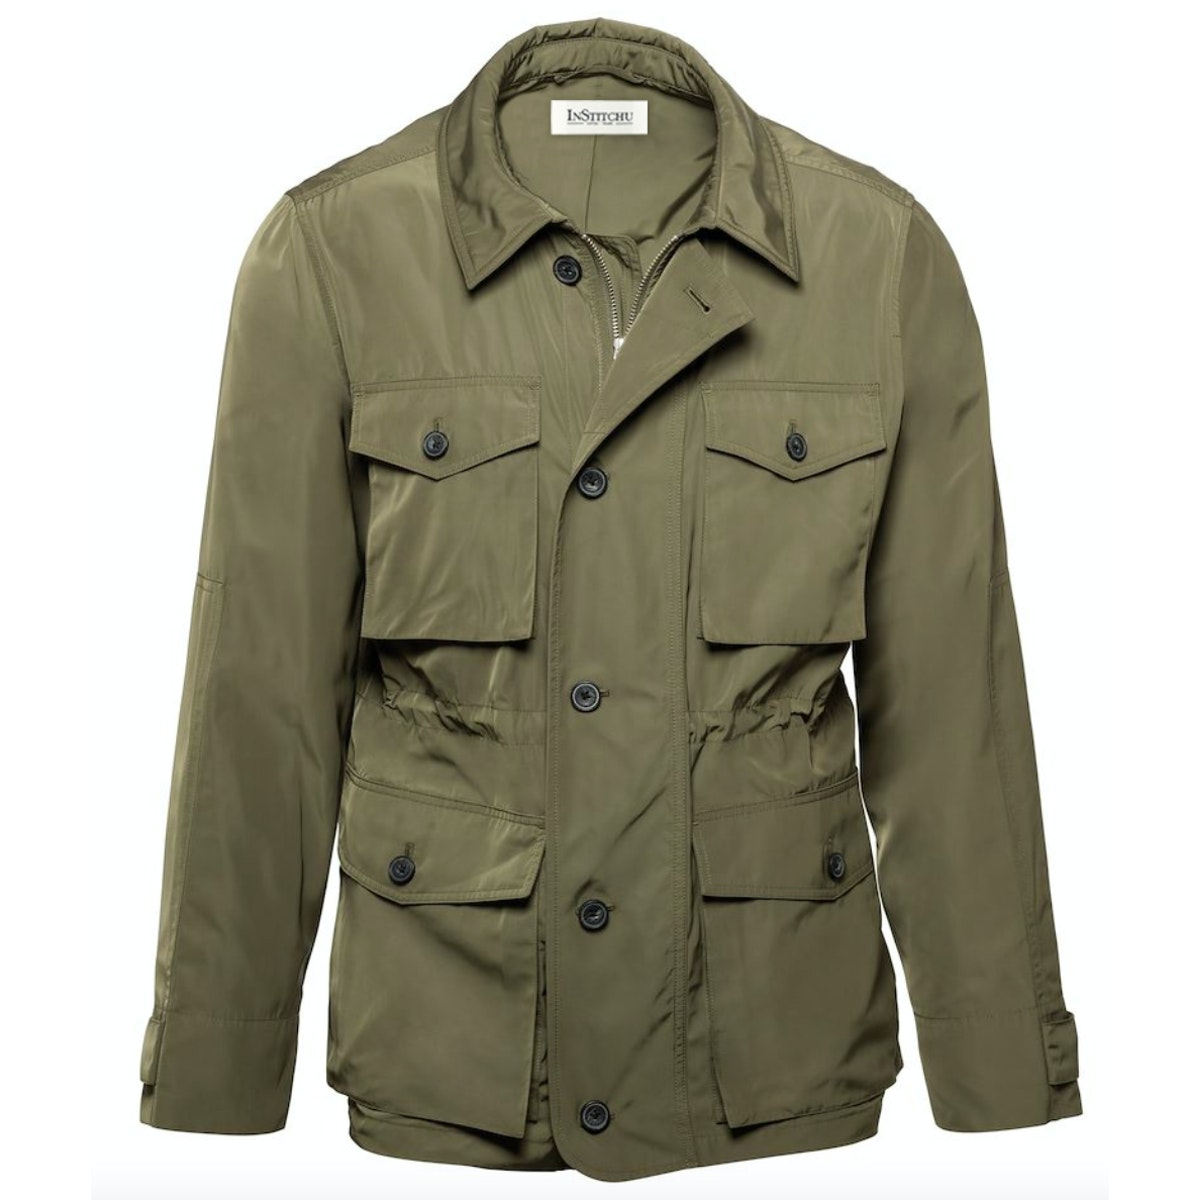 The Hunt Olive Field Jacket